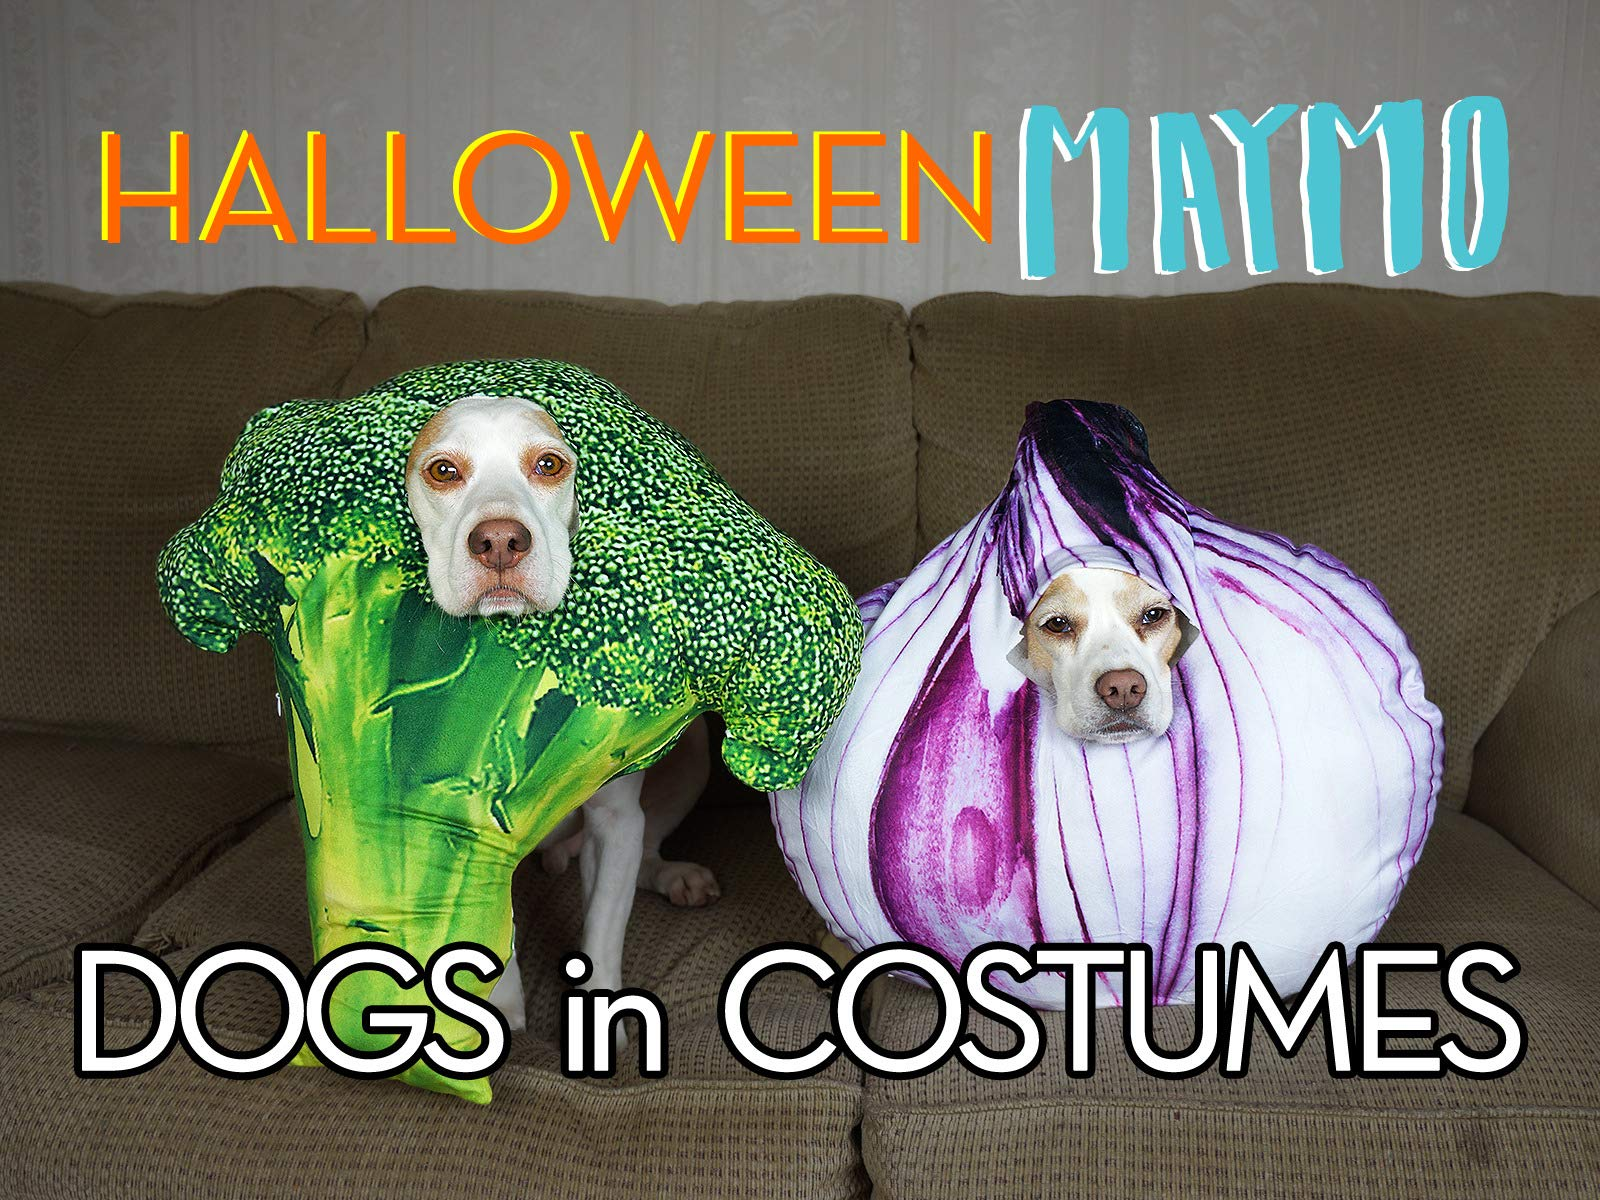 Clip: Halloween Maymo: Dogs in Costumes - Season 1